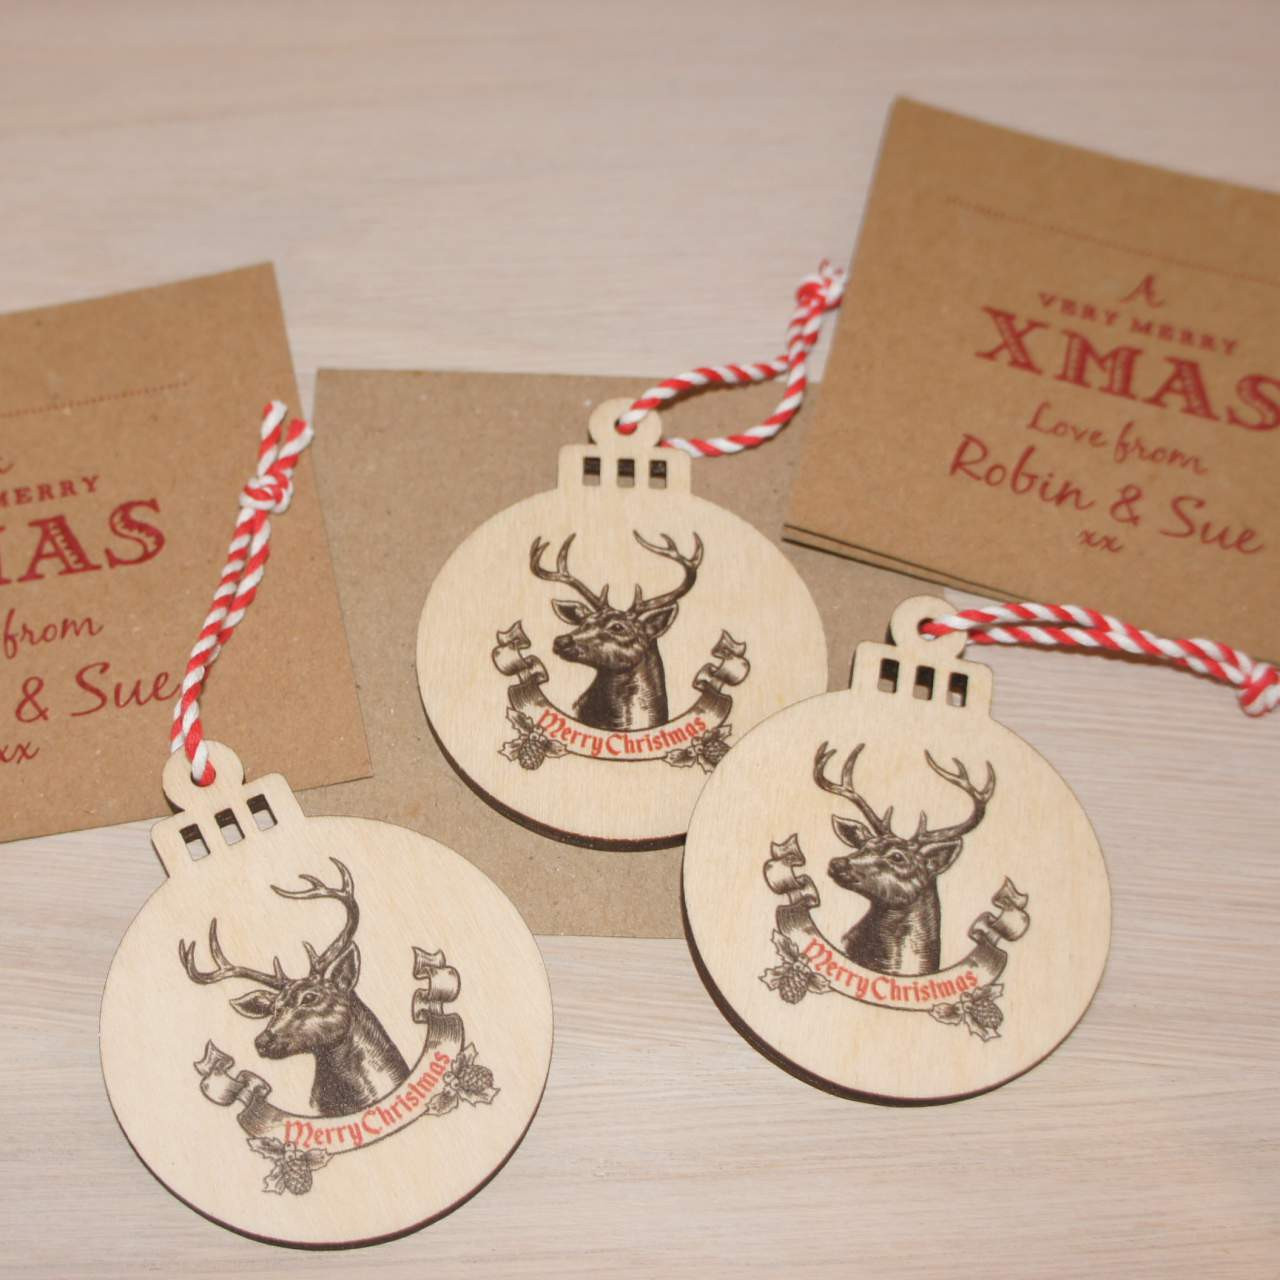 Wooden Christmas Decorations.Wooden Christmas Decorations With Backing Cards Birch Ply Printed From 48p Each Plus Vat